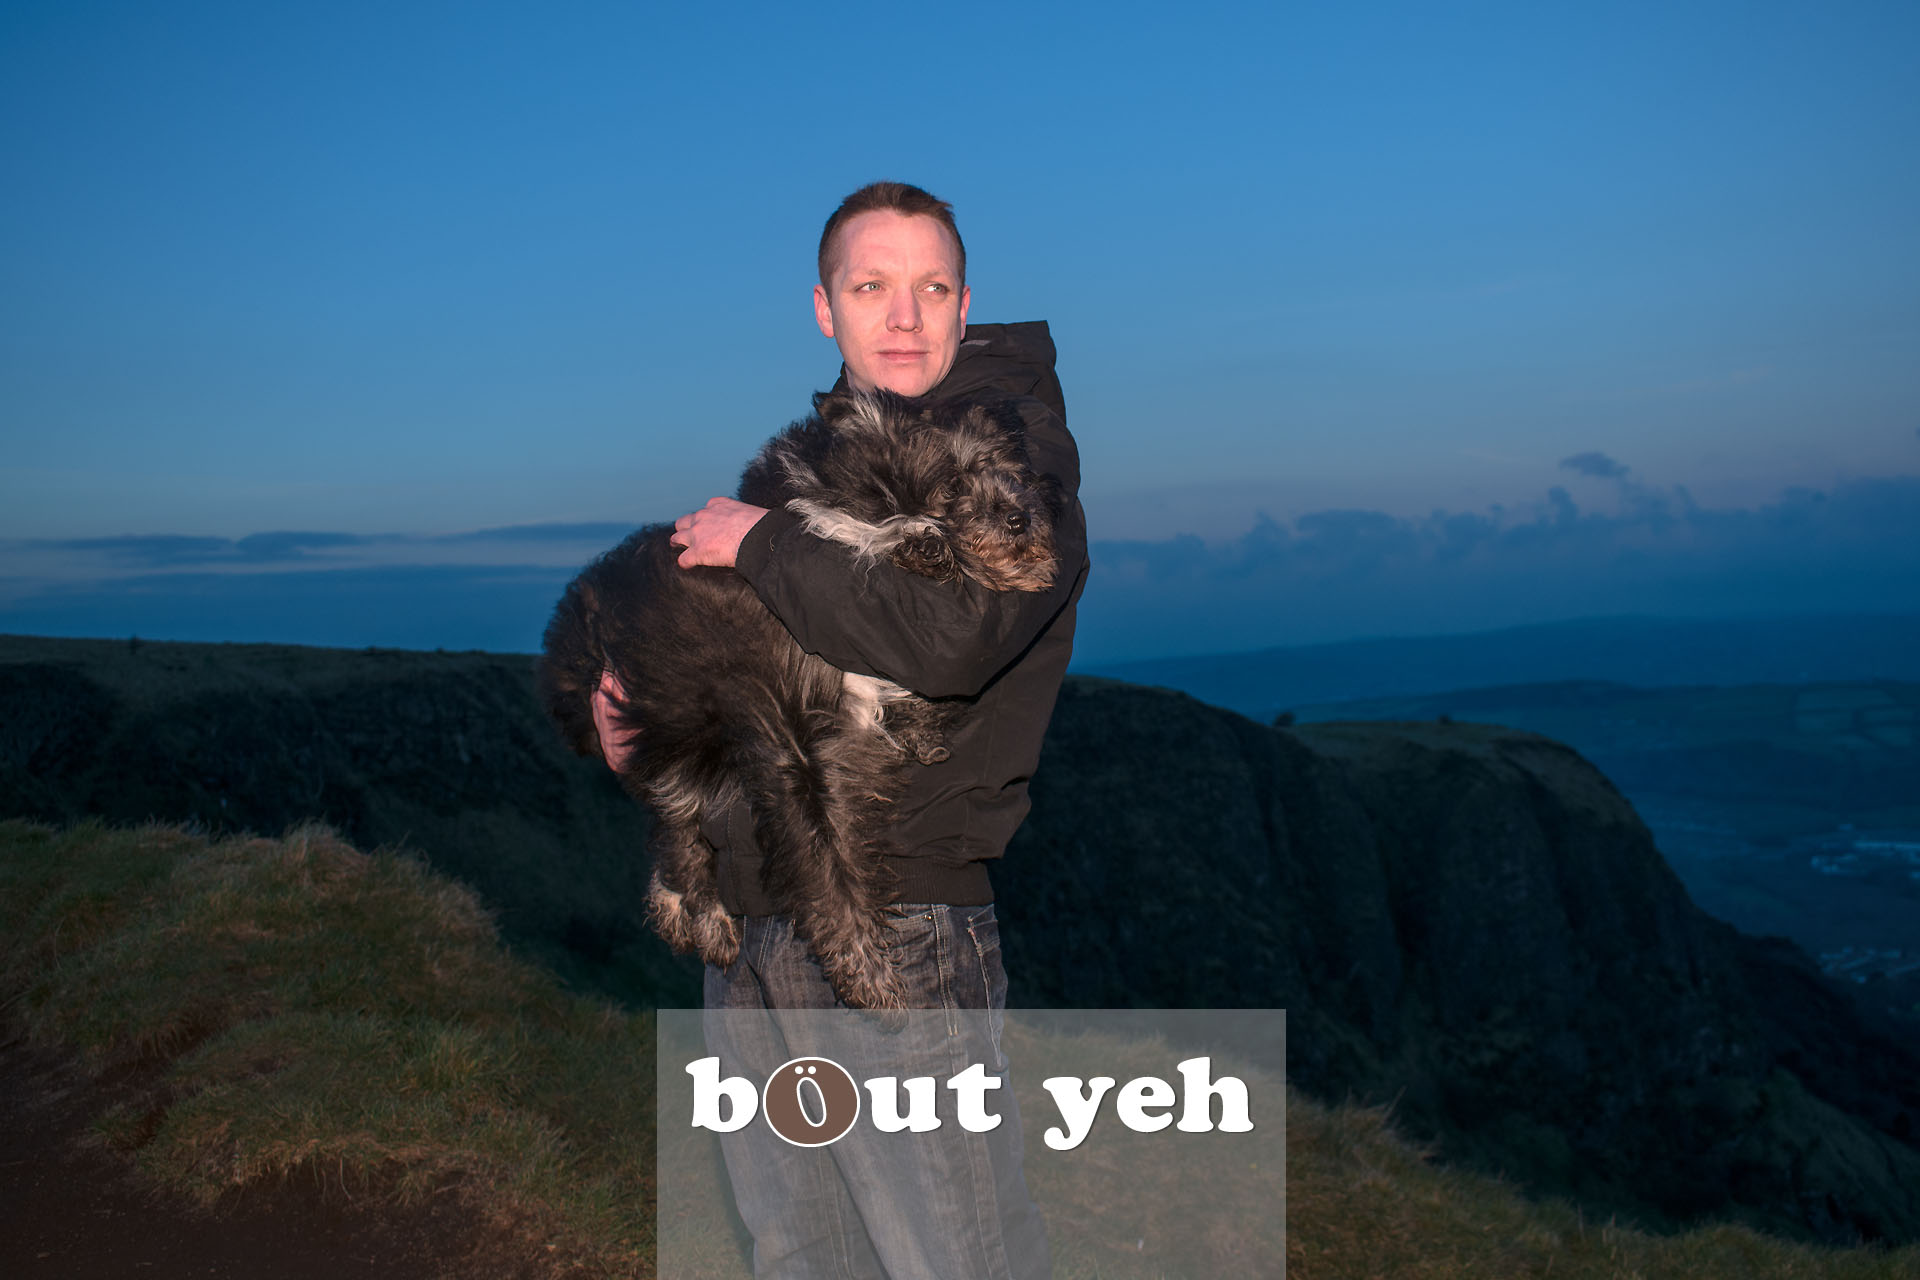 Man carries his dog for last walk on Cave Hill, Belfast, Northern Ireland - photo 4115.